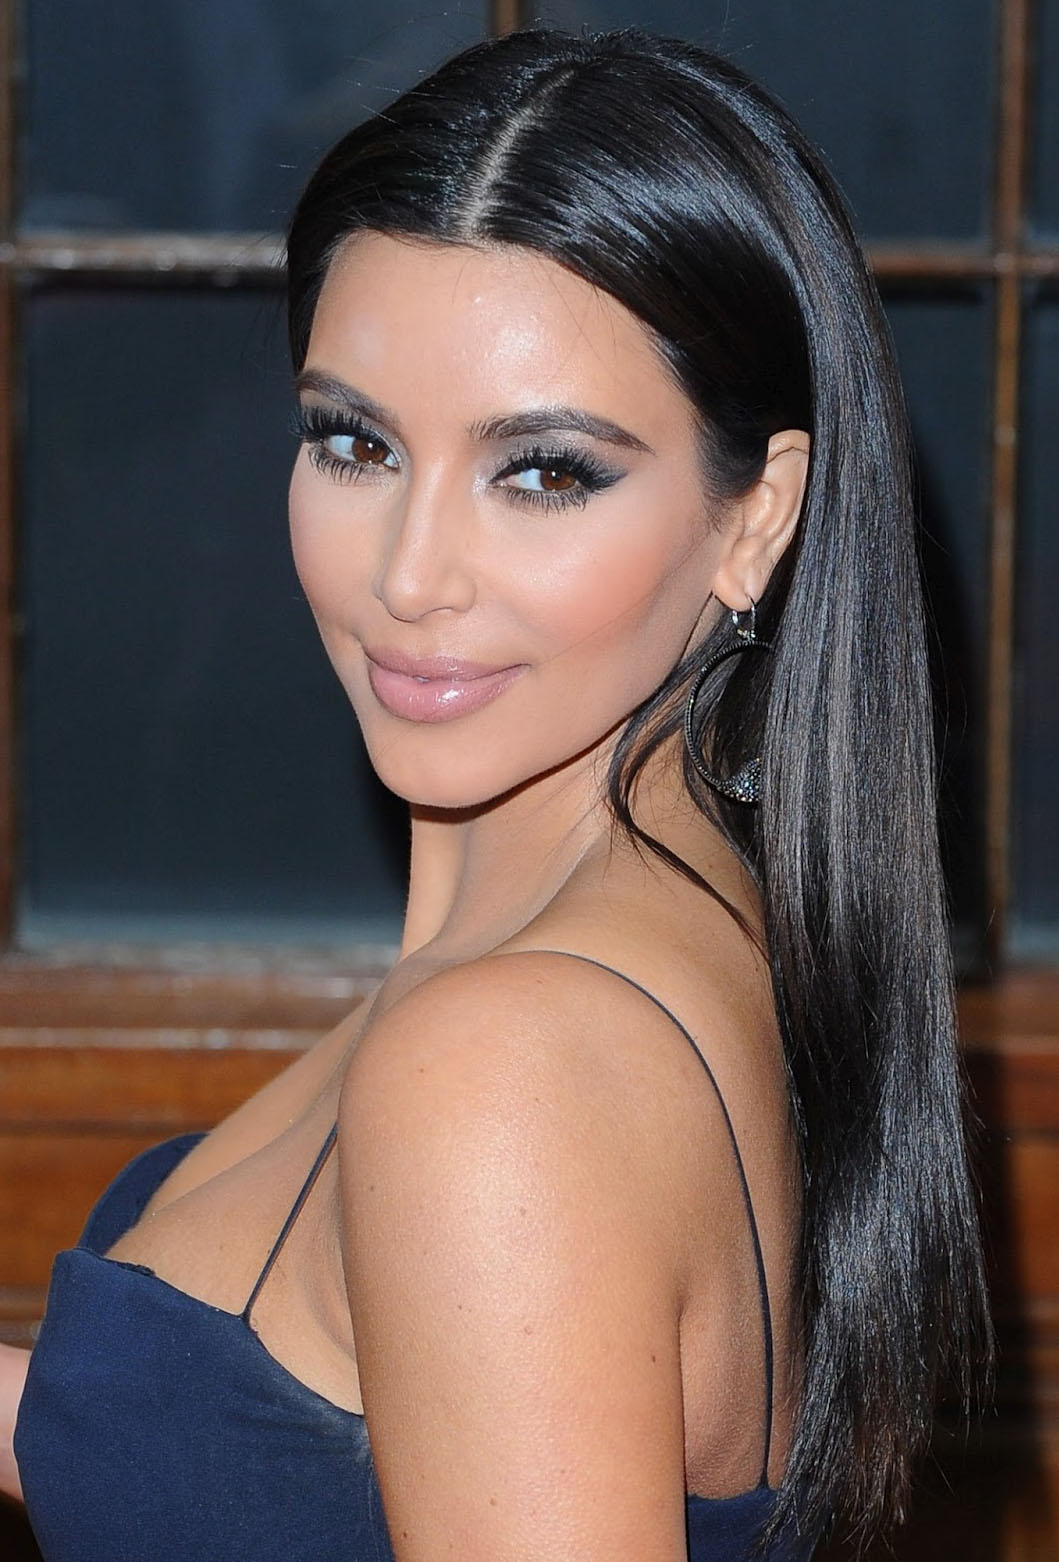 Kim Kardashian Profile And Latest Pictures 2013